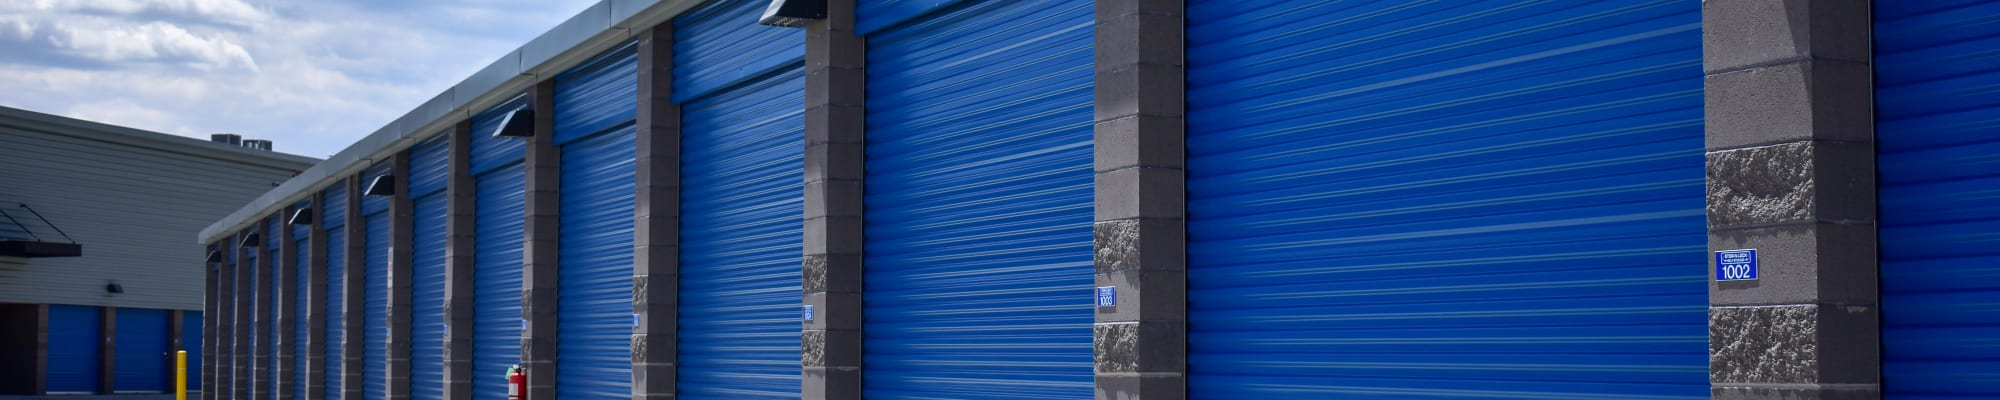 Blog for STOR-N-LOCK Self Storage in Colorado Springs, Colorado